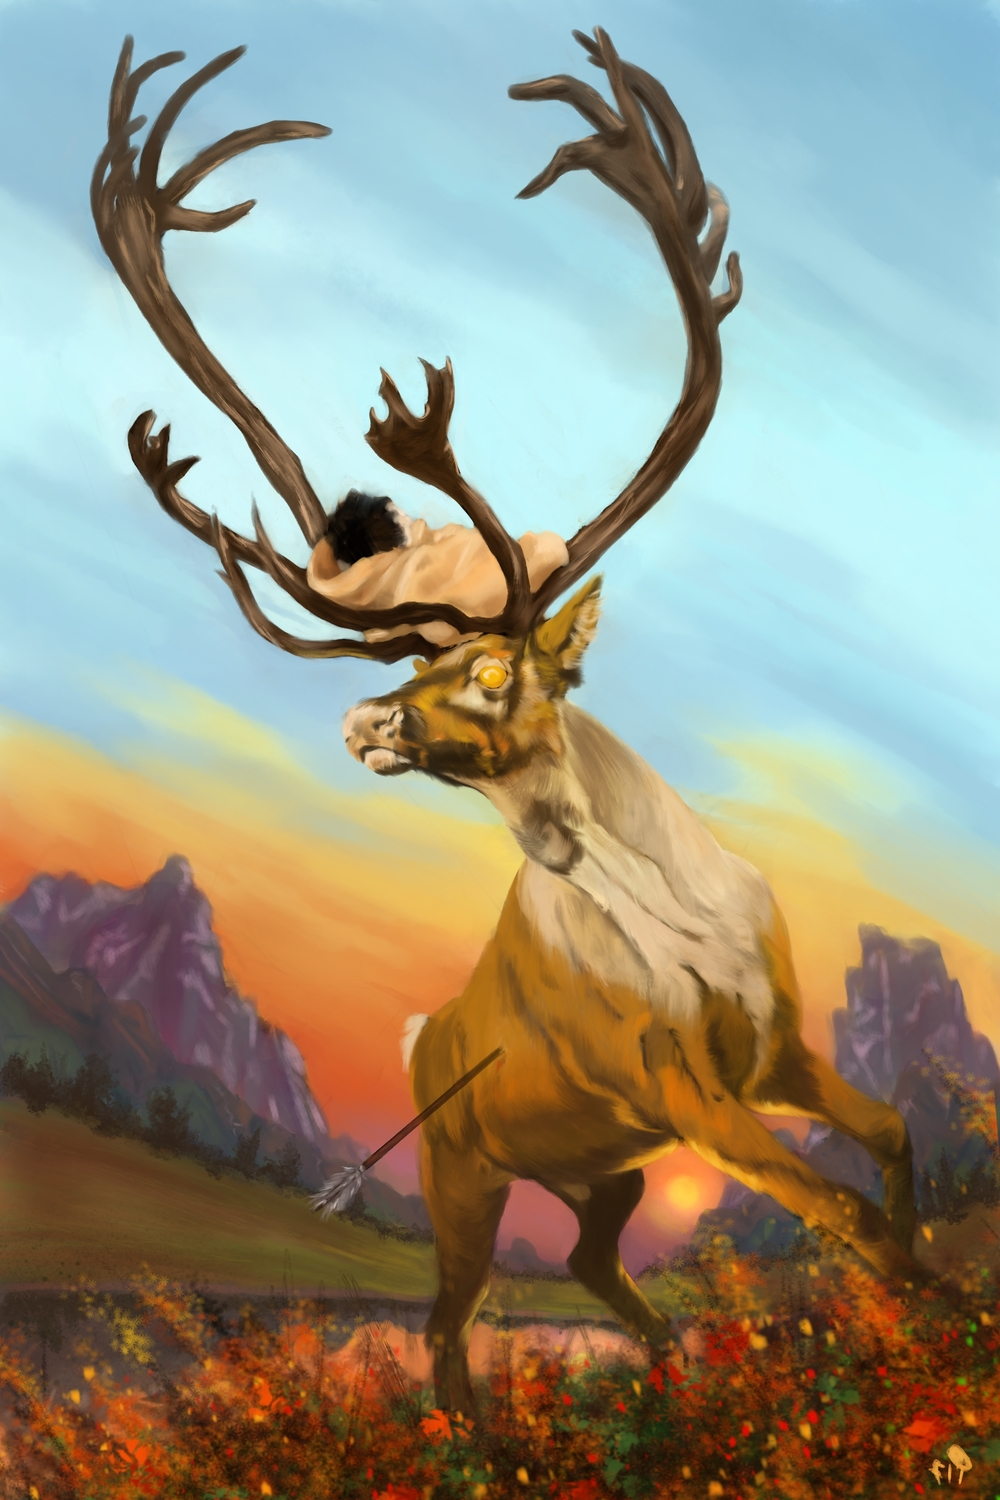 The Golden Stag Artwork by Patrick Stacy